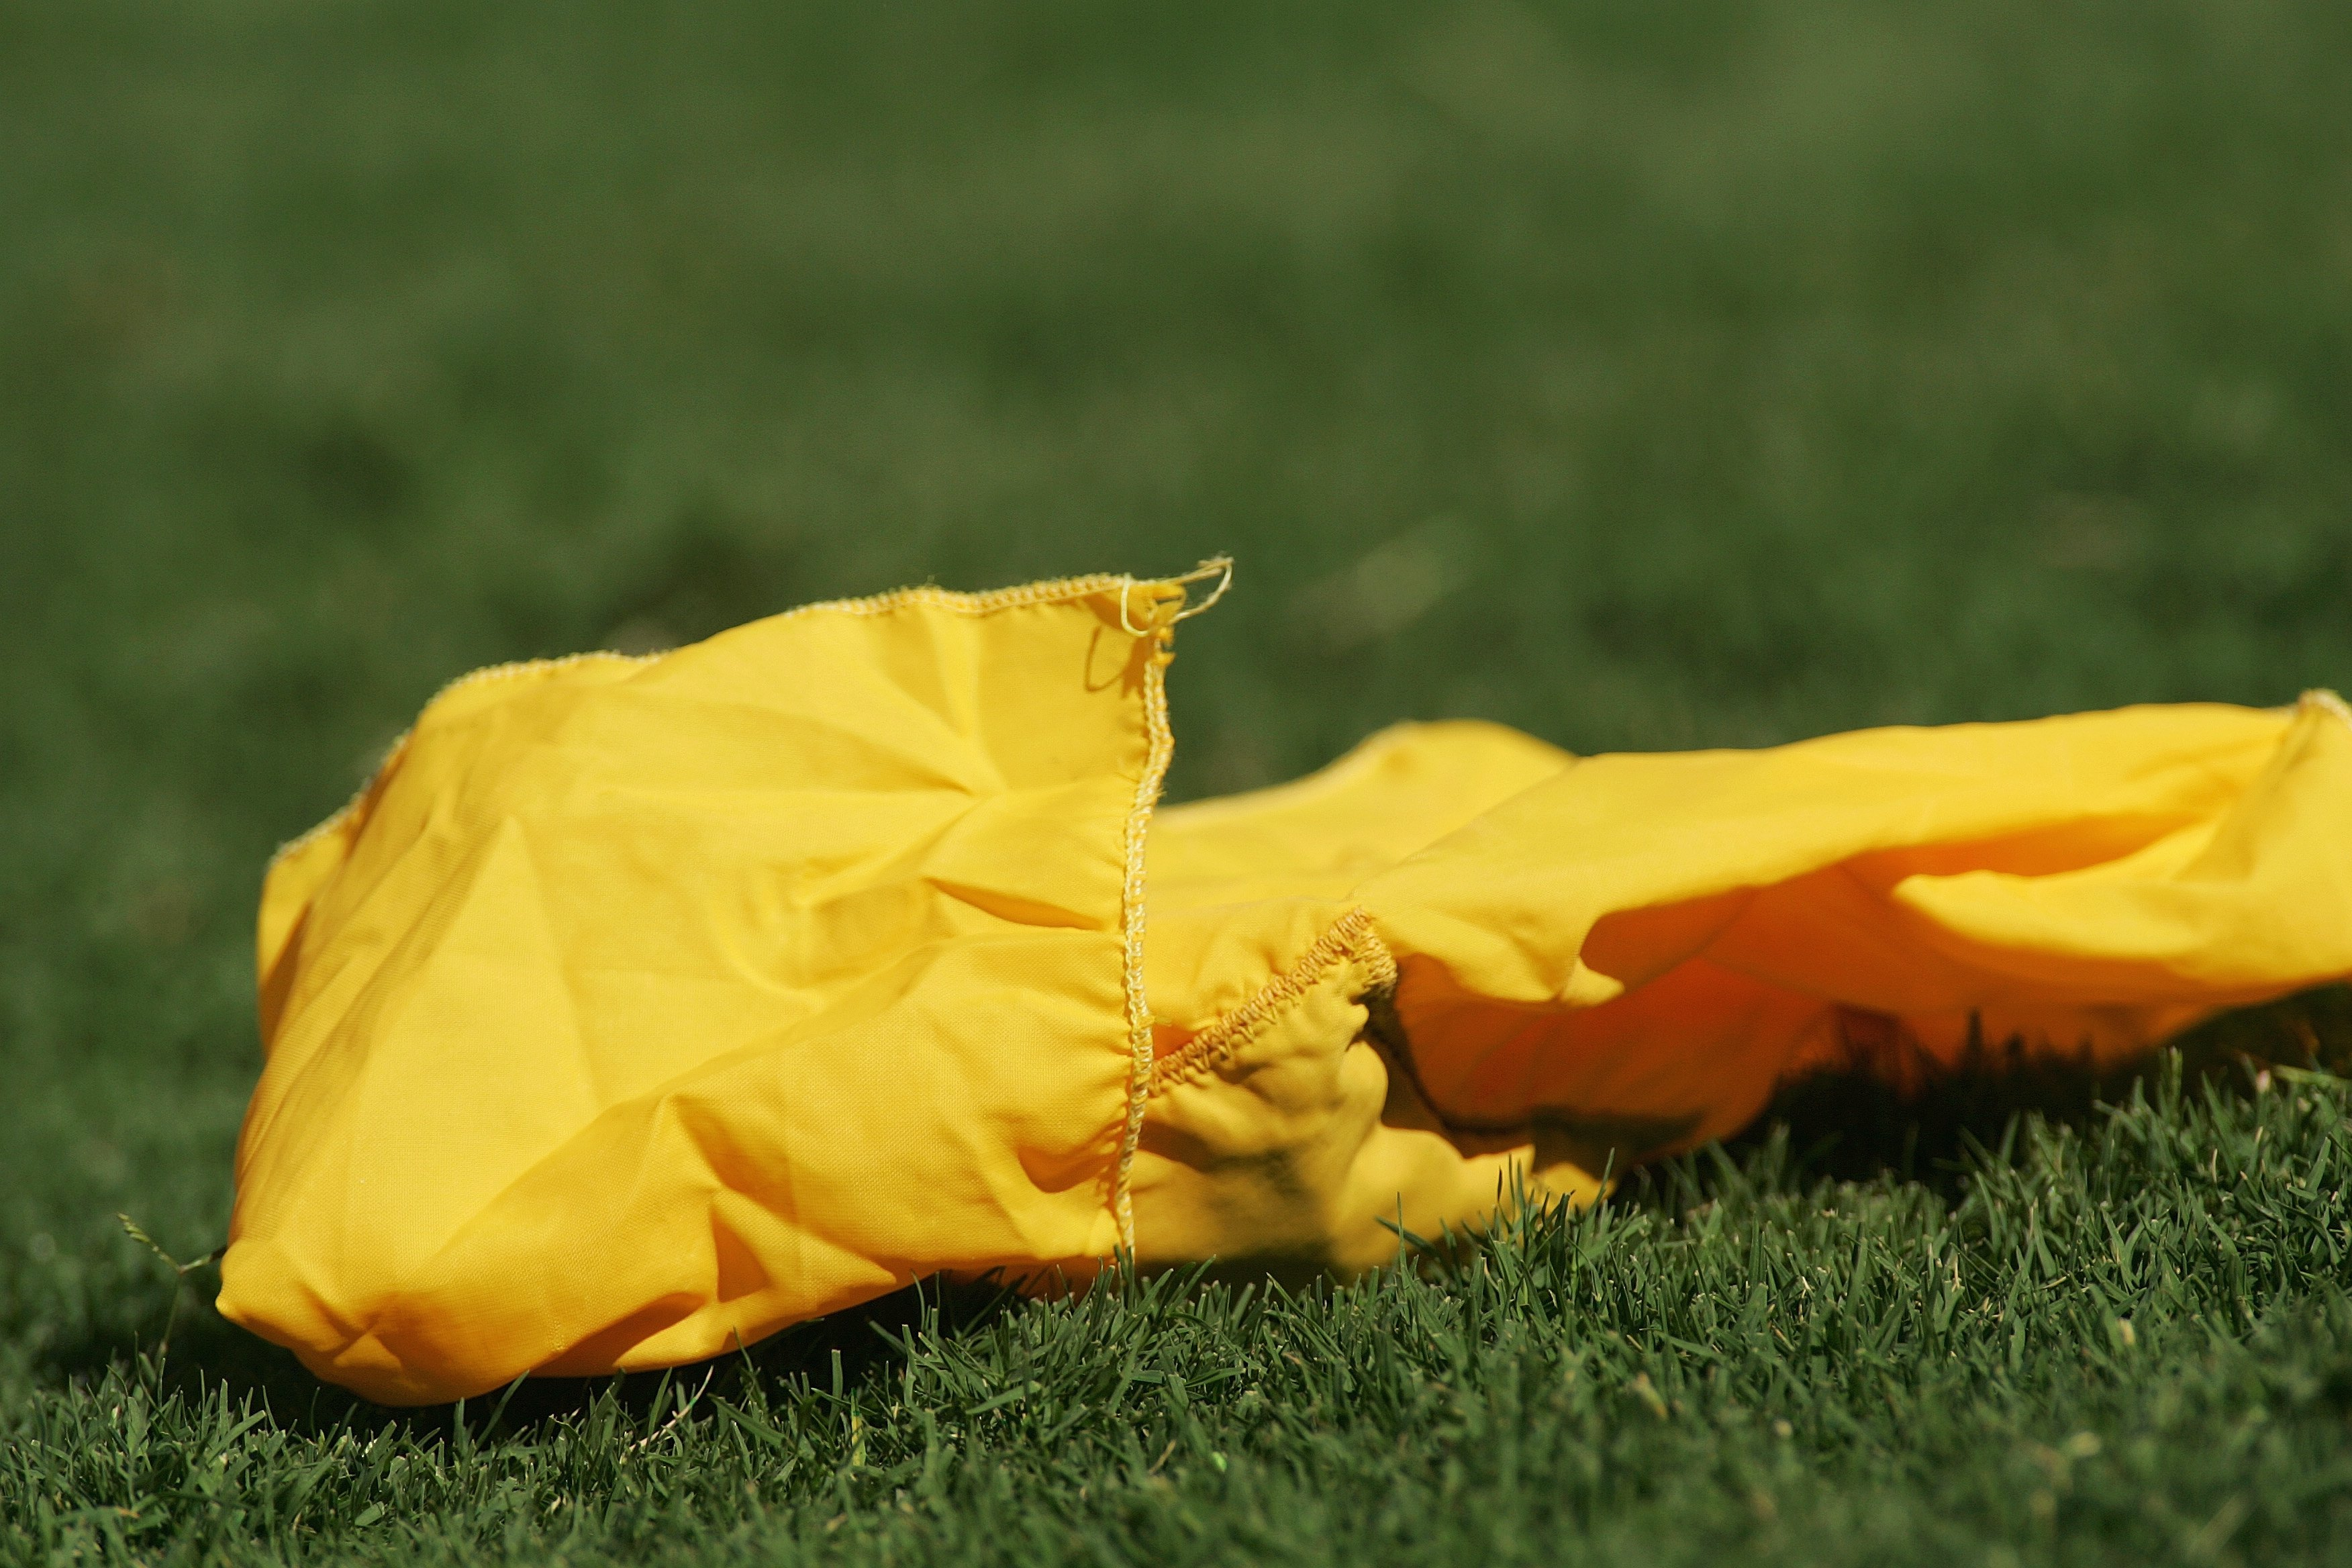 DALLAS - OCTOBER 7:  Detail of the yellow flag thrown by a referee during the Red River Shootout between the Texas Longhorns and the Oklahoma Sooners at the Cotton Bowl on October 7, 2006 in Dallas, Texas. The Longhorns won 28-10. (Photo by Ronald Martine